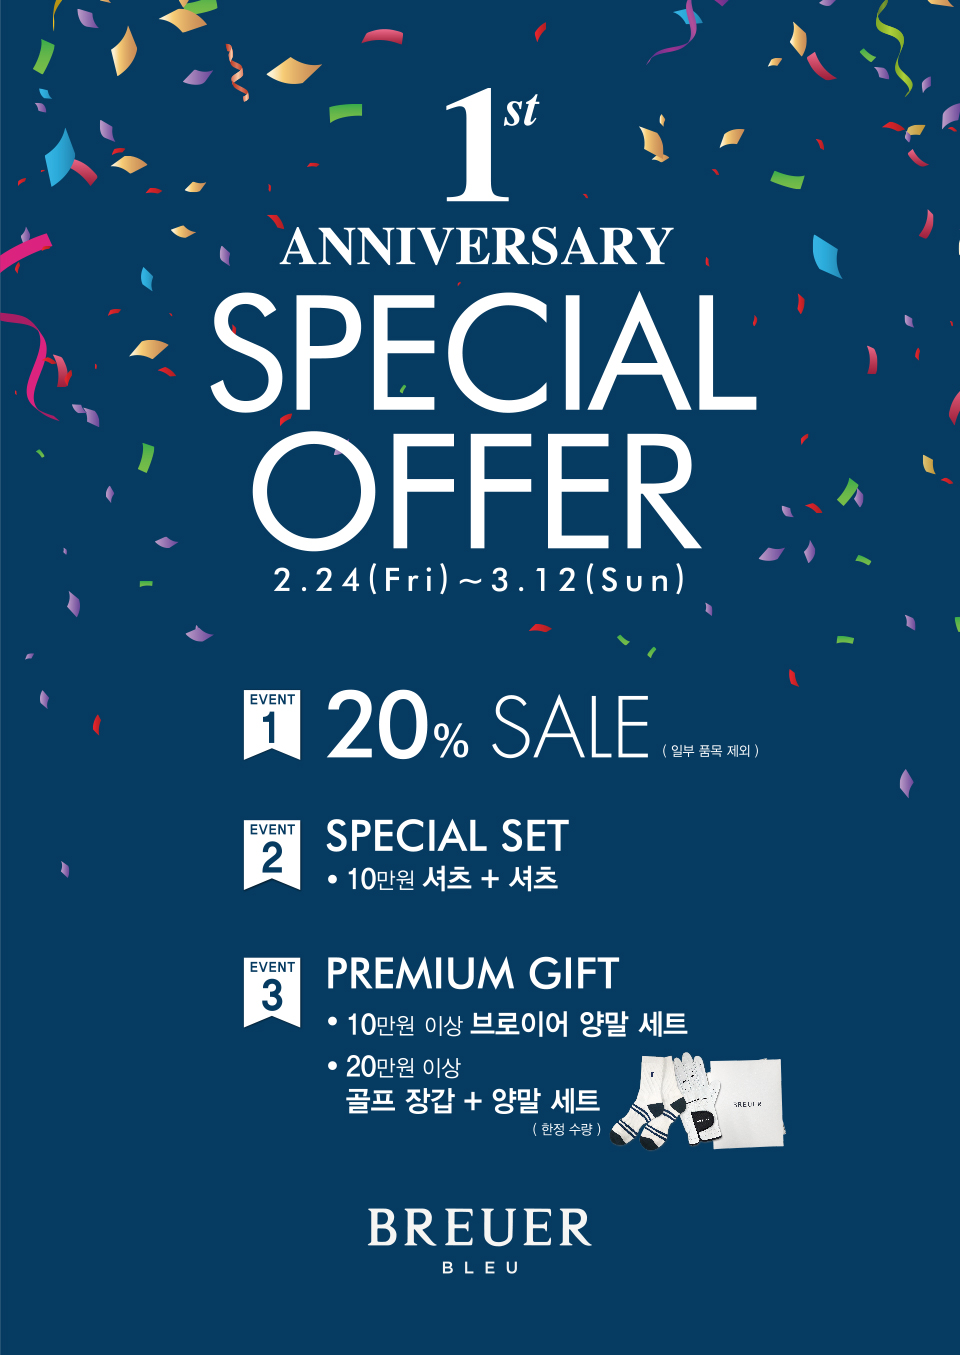 1st ANNIVERSARY SPECIAL OFFER